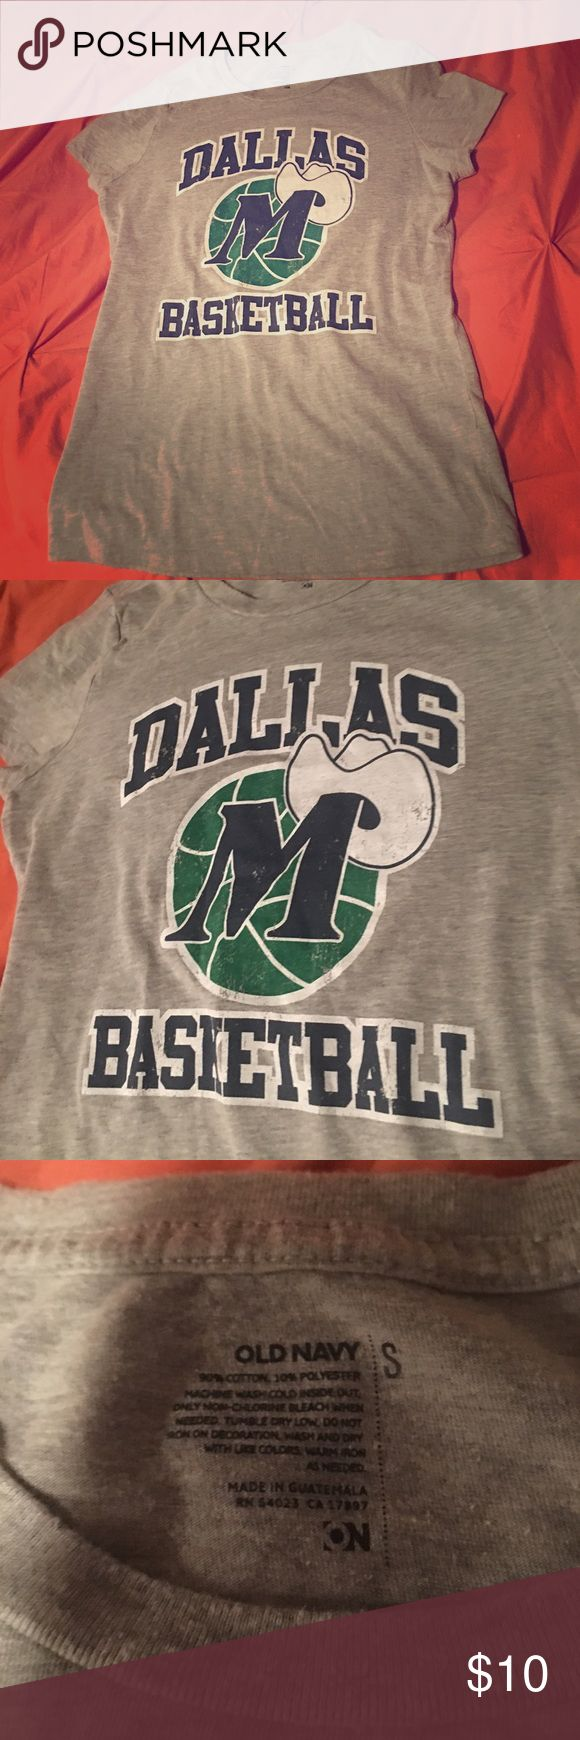 Dallas Mavericks fitted shirt 🏀 Support the Dallas Mavs with this super cute fitted tee.  Almost perfect condition.  Ready to sell!!  Make an offer or bundle to save! Old Navy Tops Tees - Short Sleeve